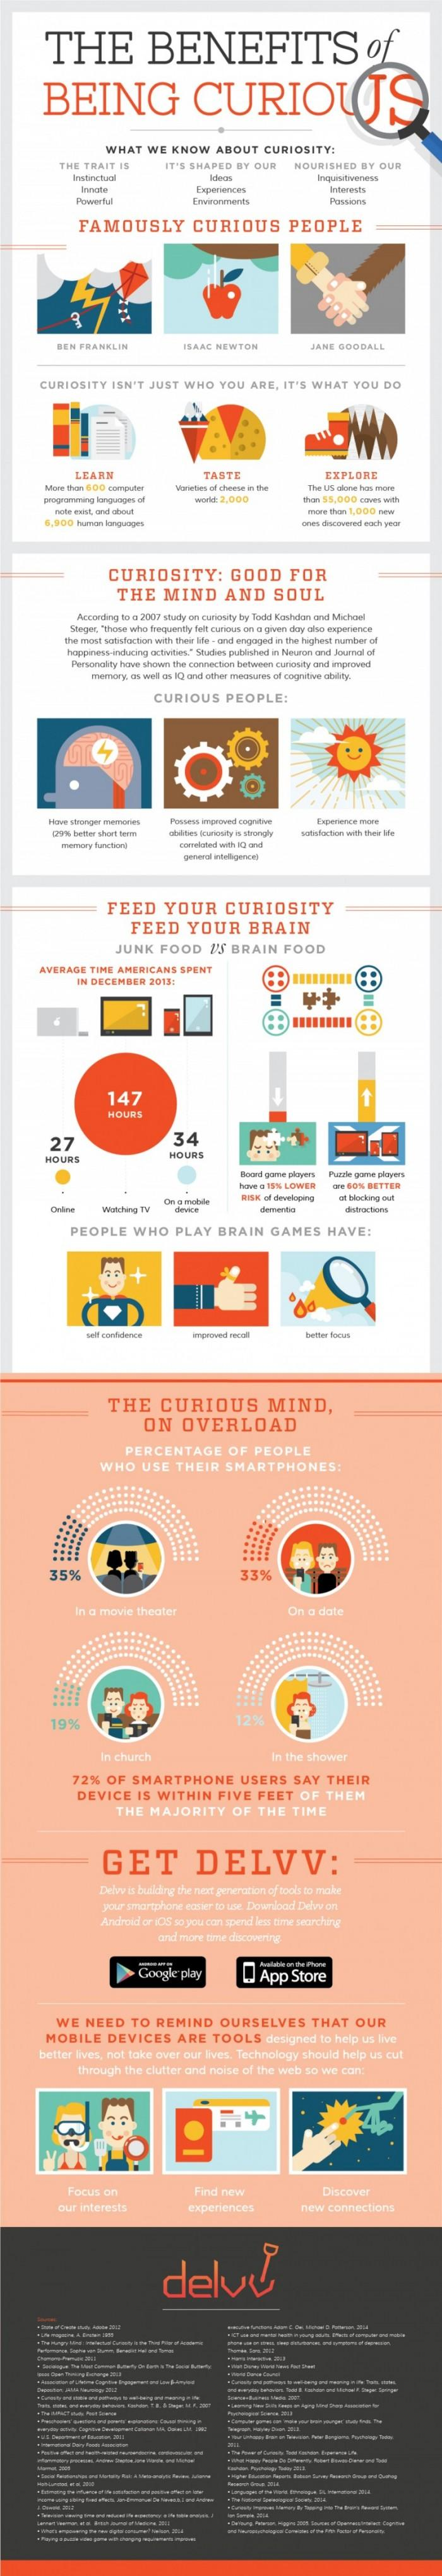 The Benefits Of Being Curious